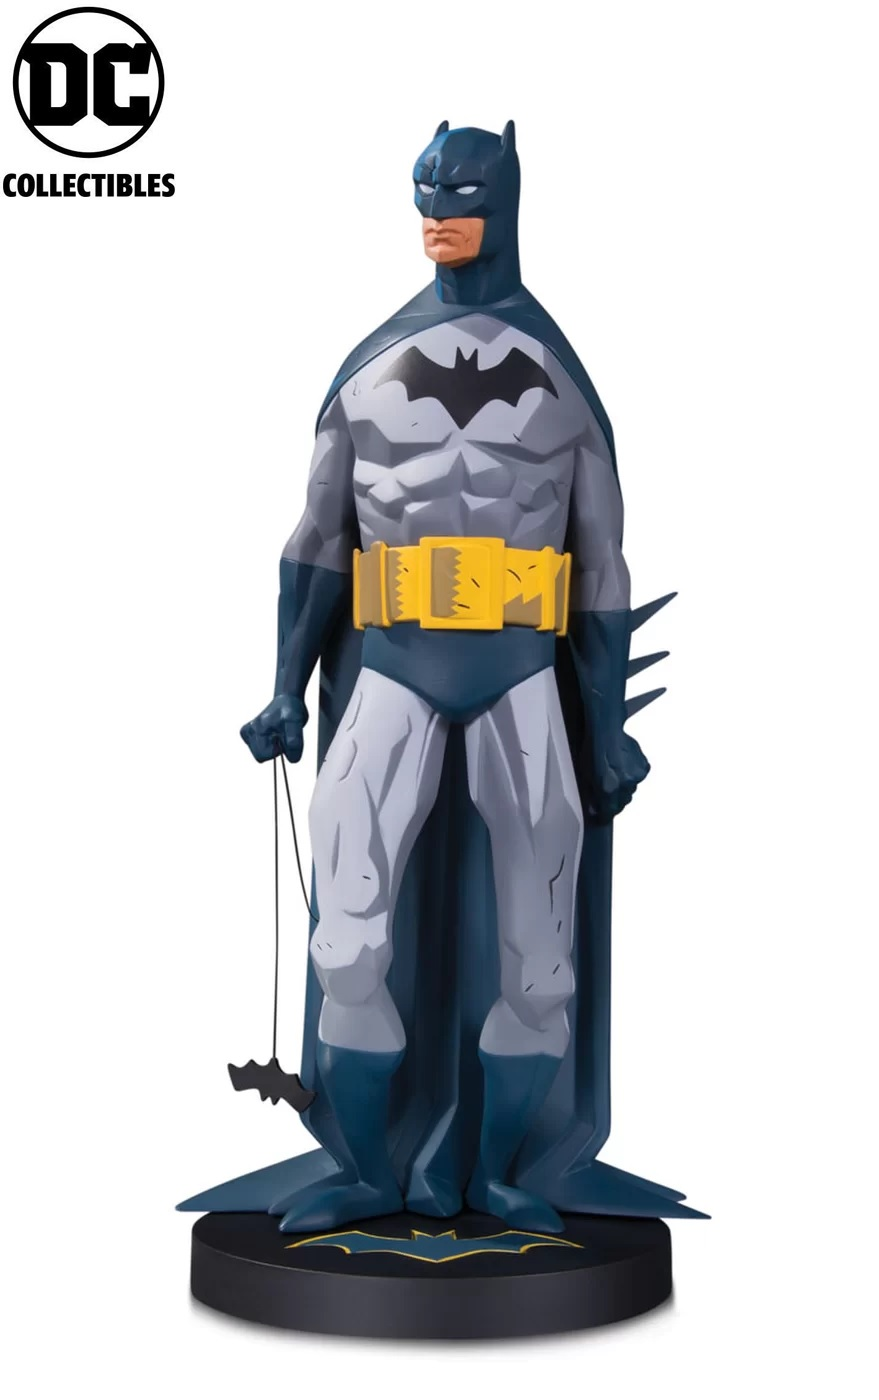 DC Comics Designer Series Batman Mignola Mini Statue